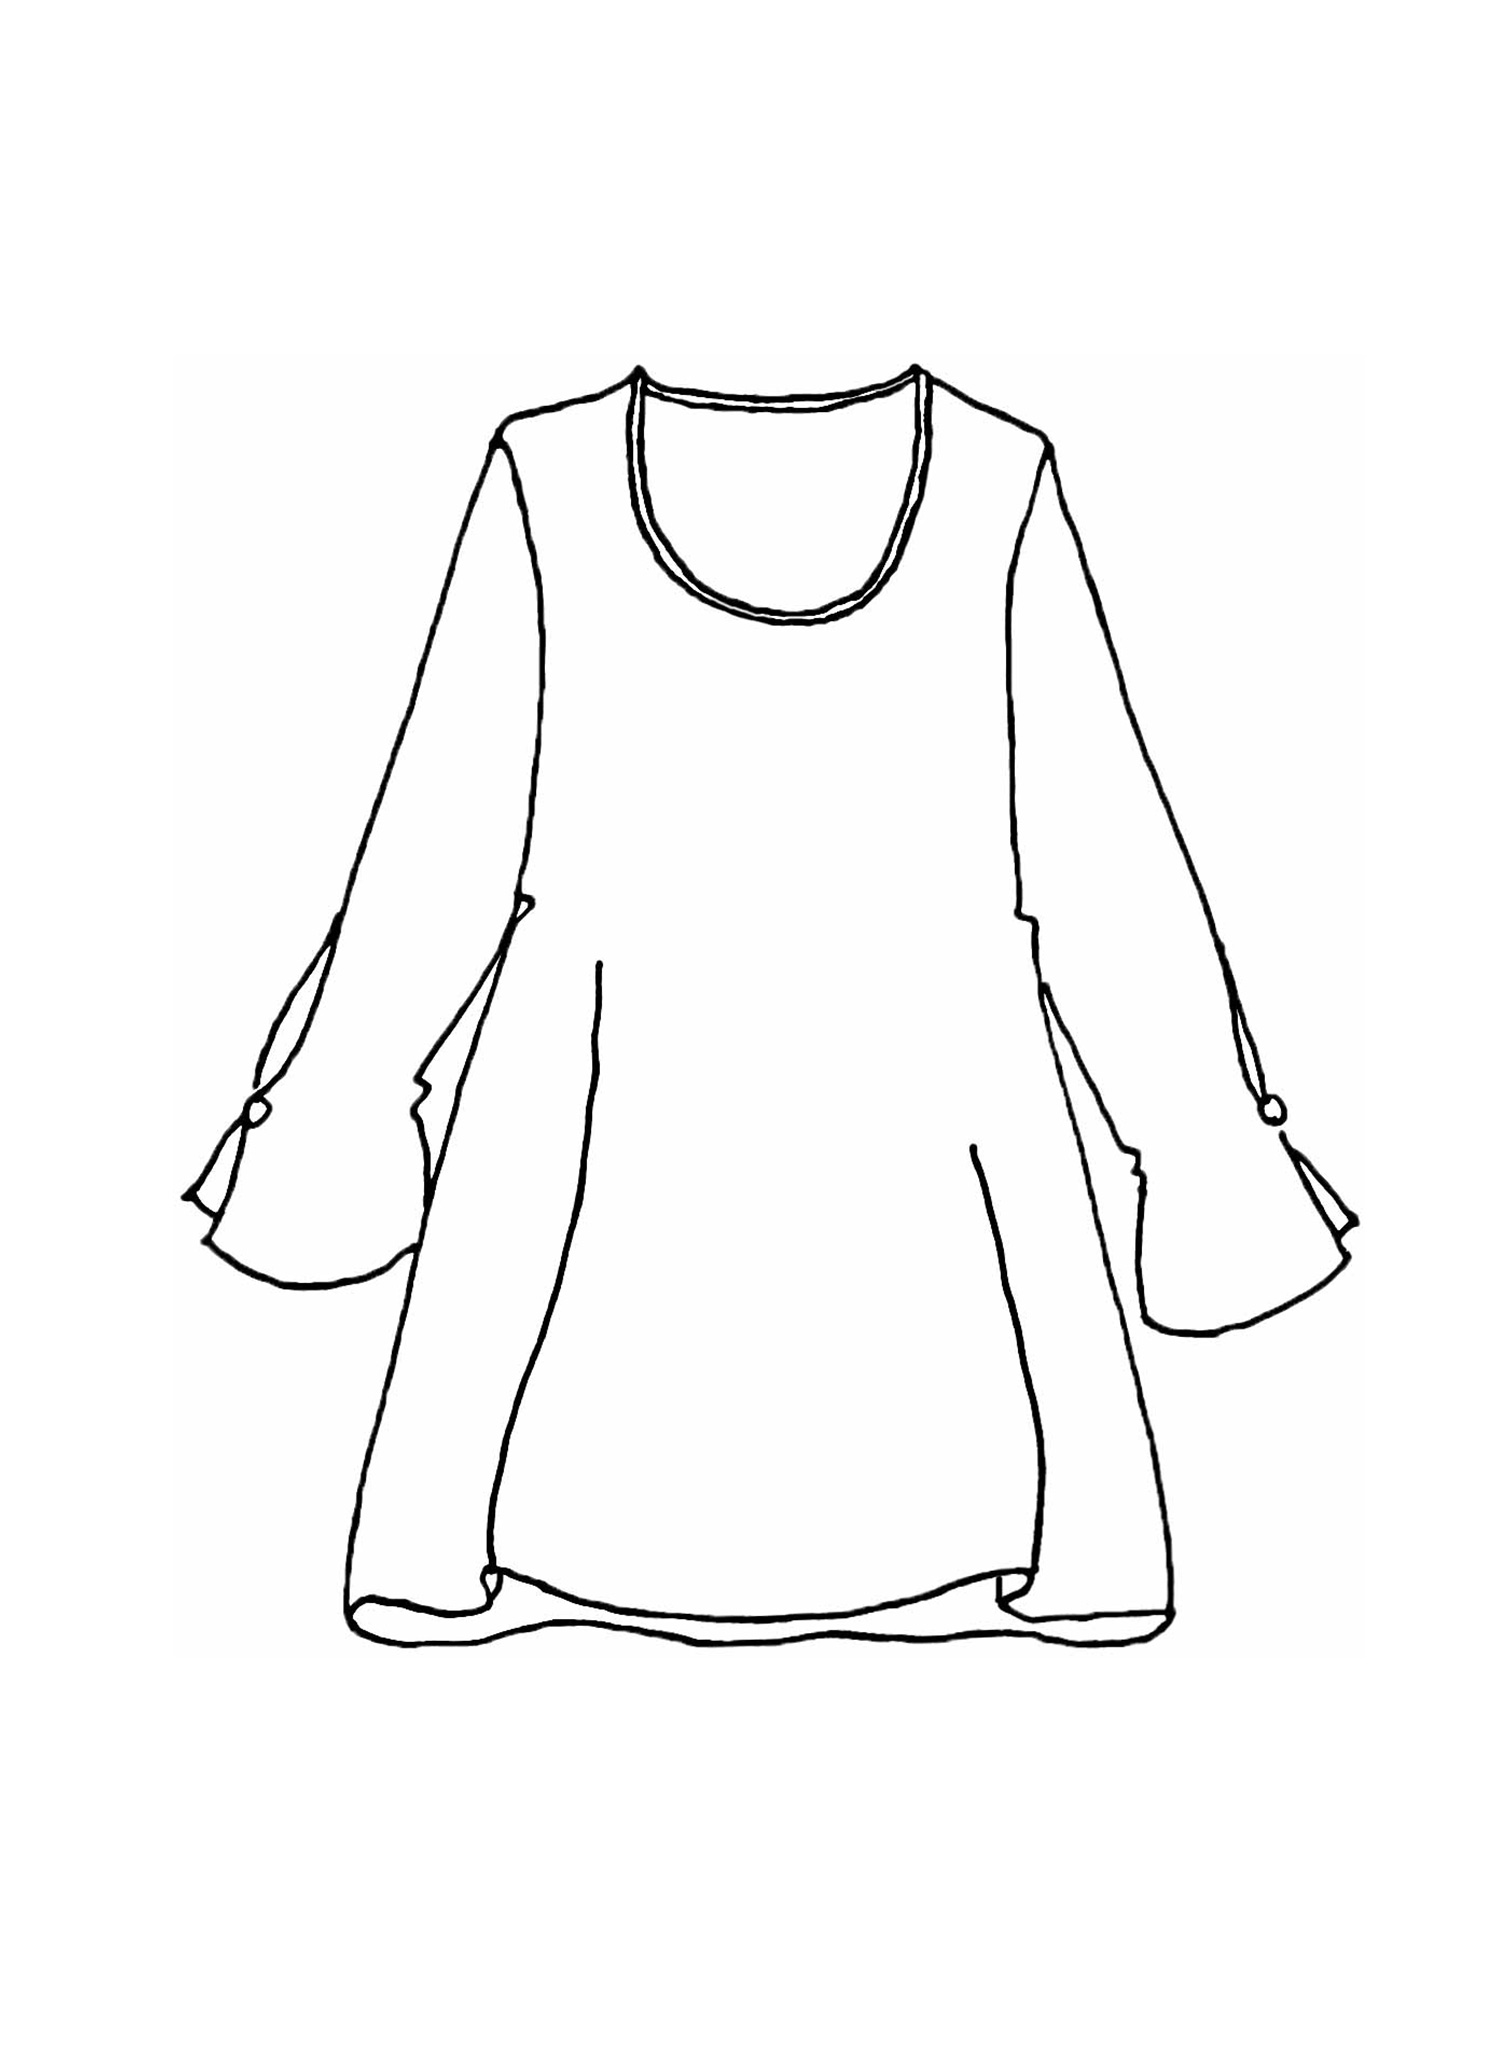 Graceful Tunic sketch image